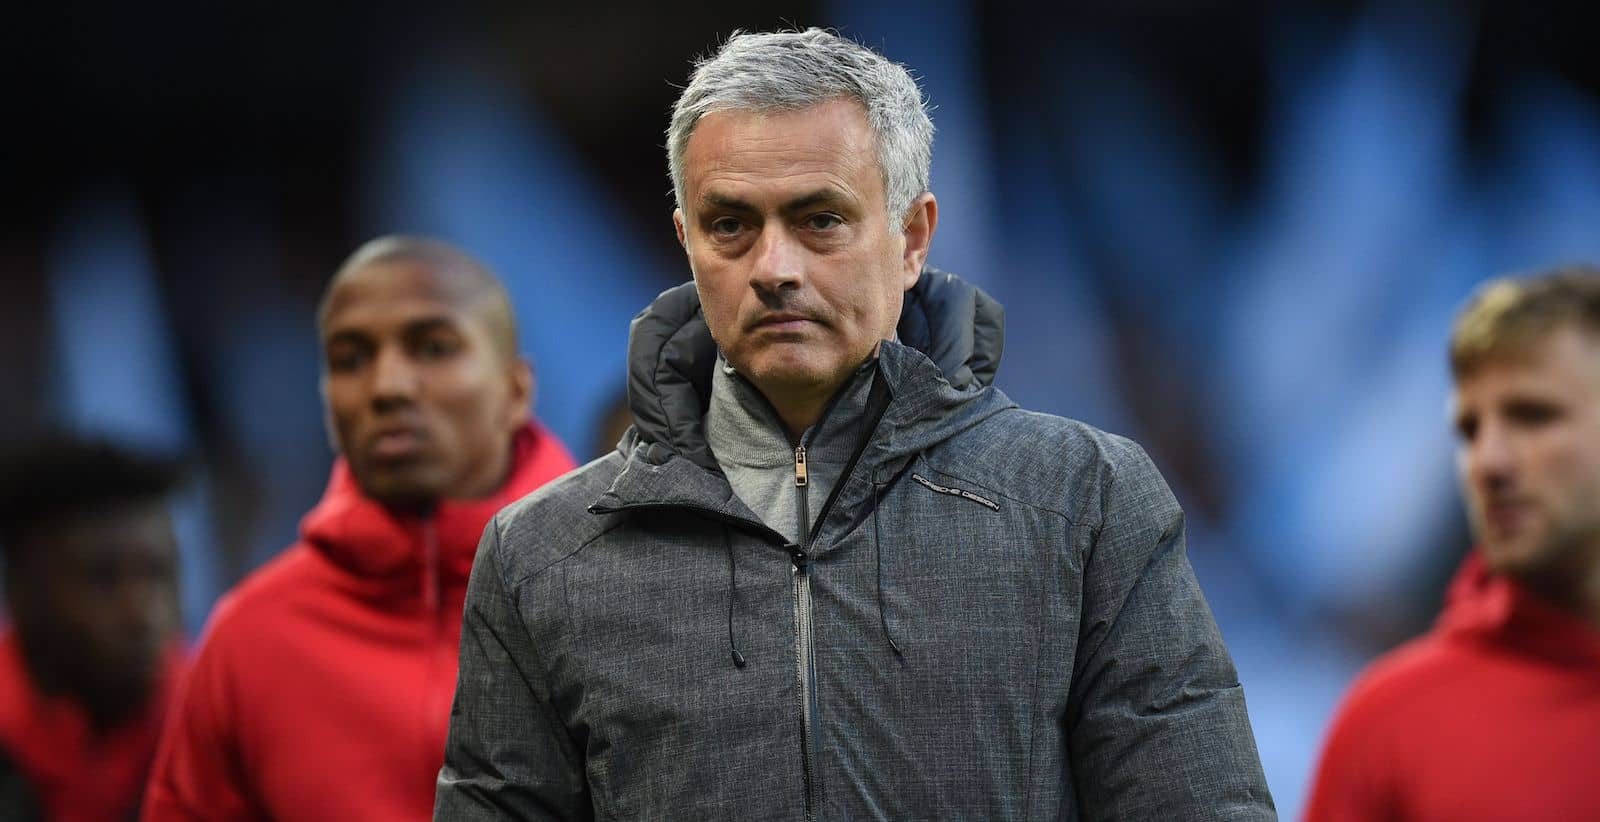 Jose Mourinho offers reminder of European success at Manchester United